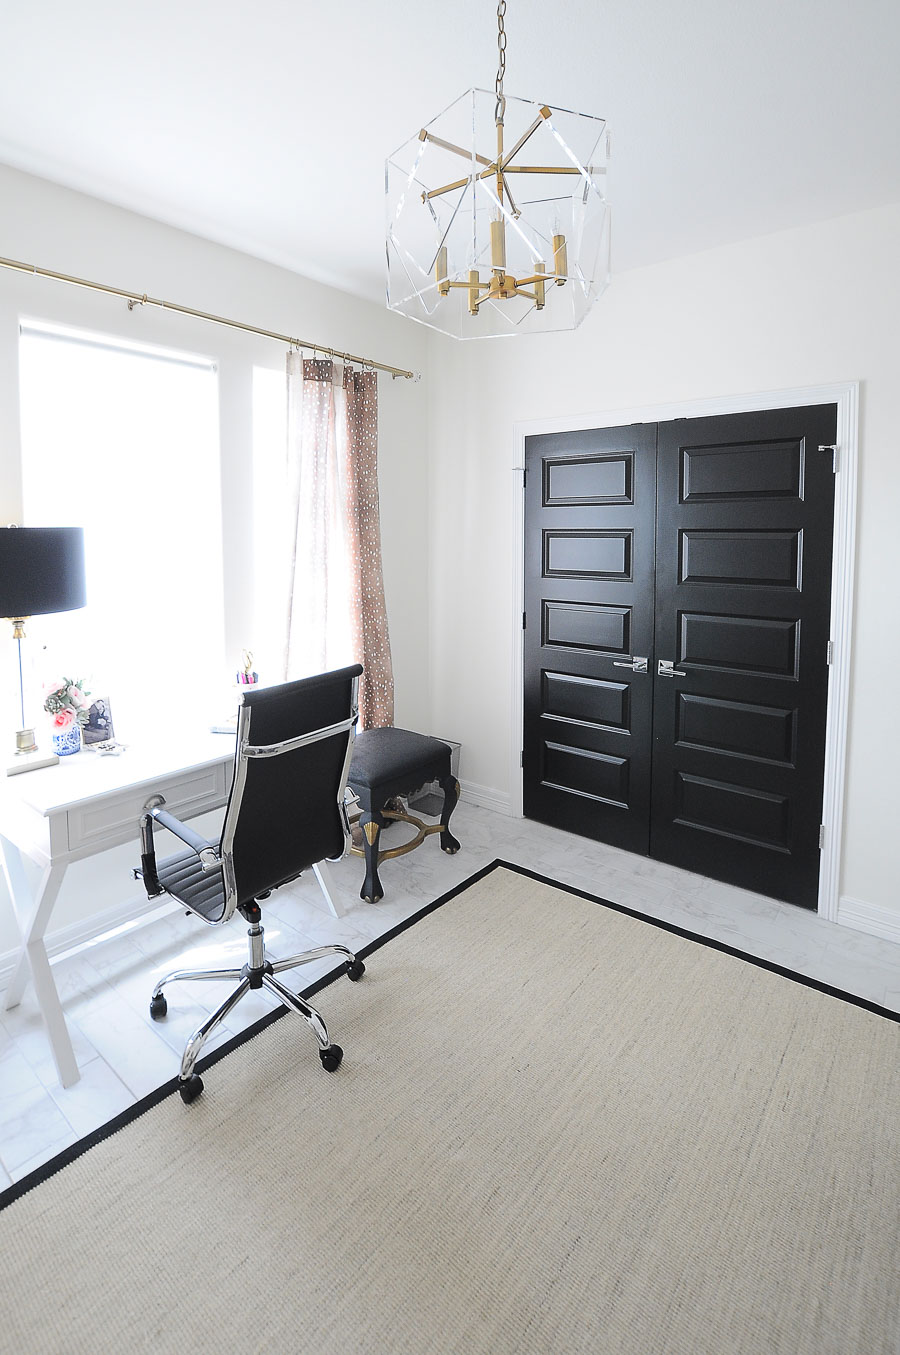 Black closet doors in a bright white and gold home office space.